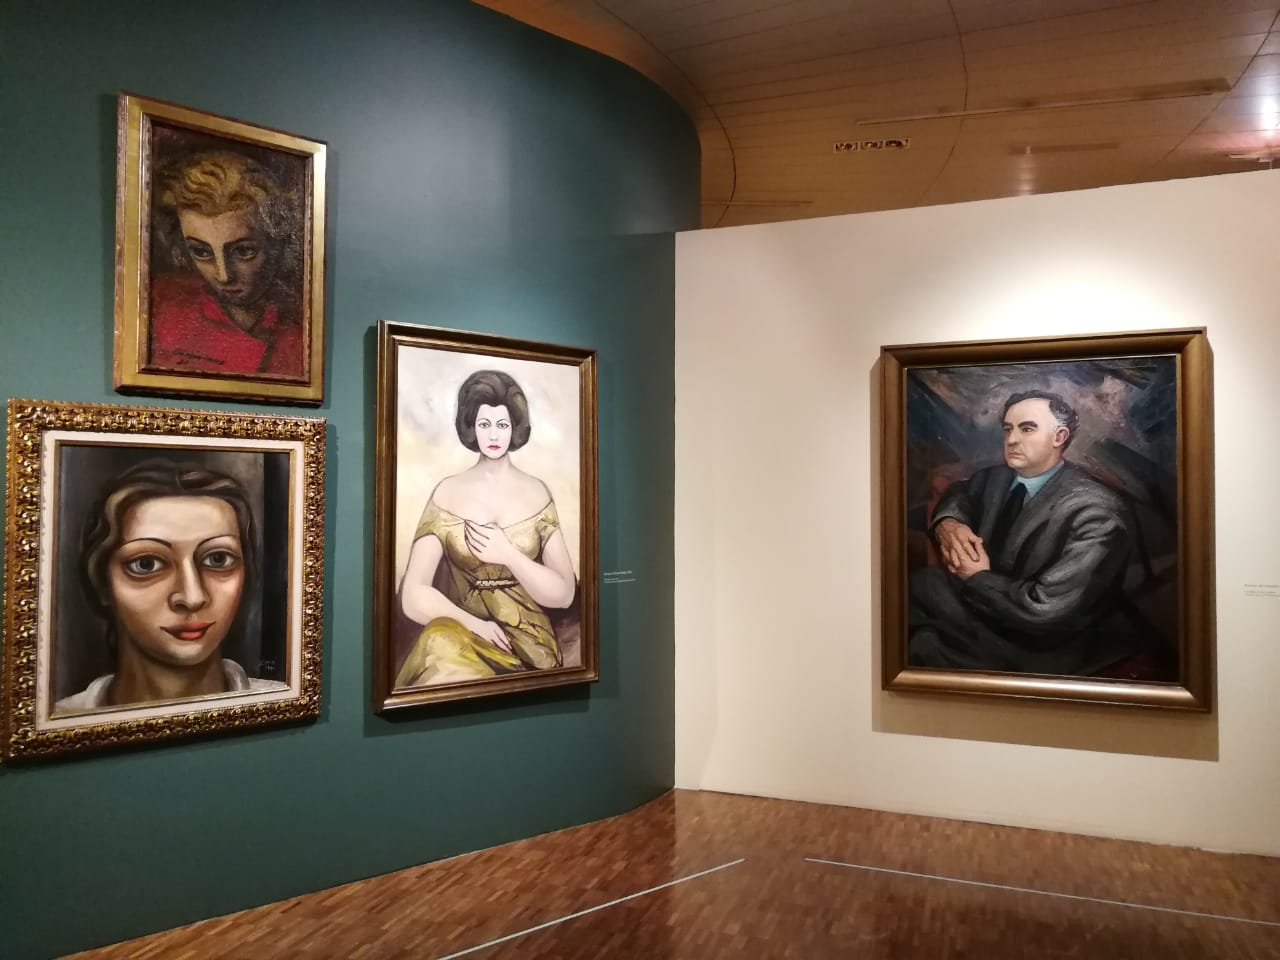 Works by some of Mexico's most renowned Modern Art artists